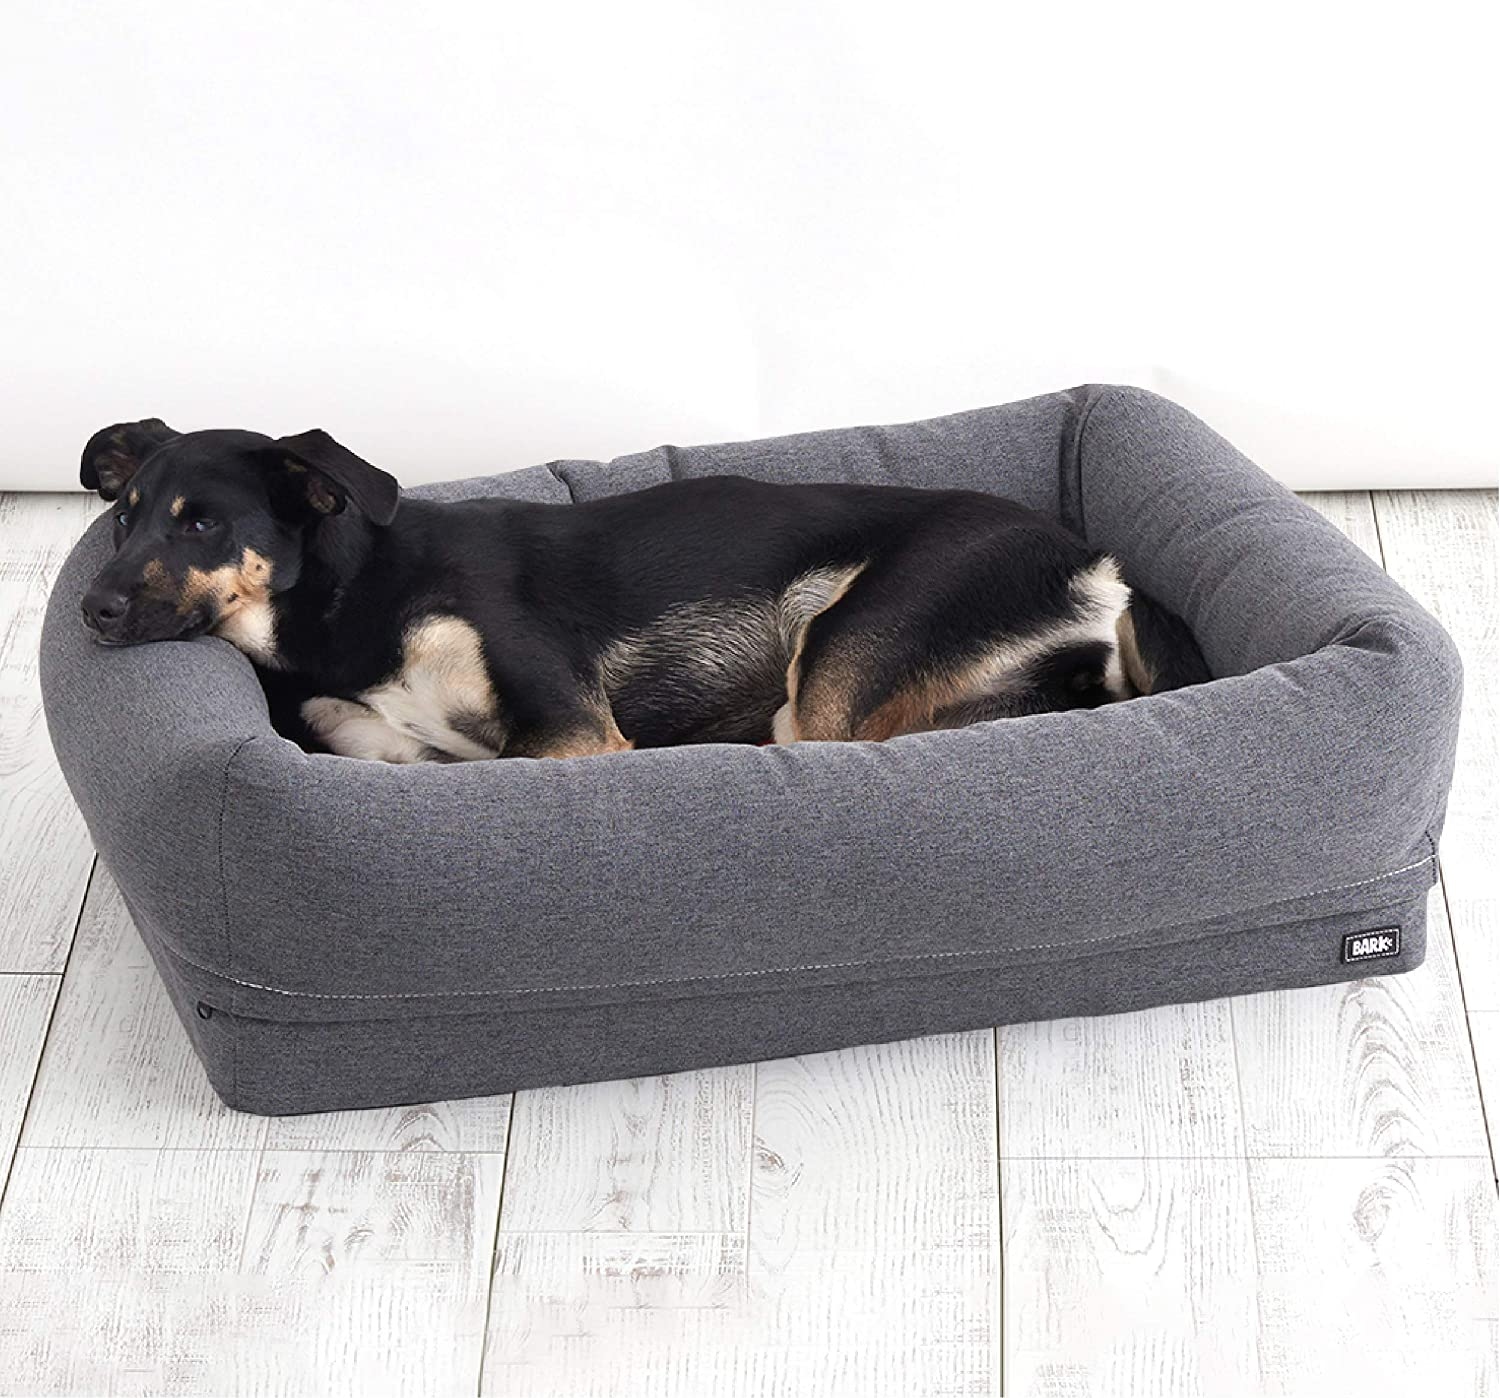 Best Dog Bed For Shih Tzu